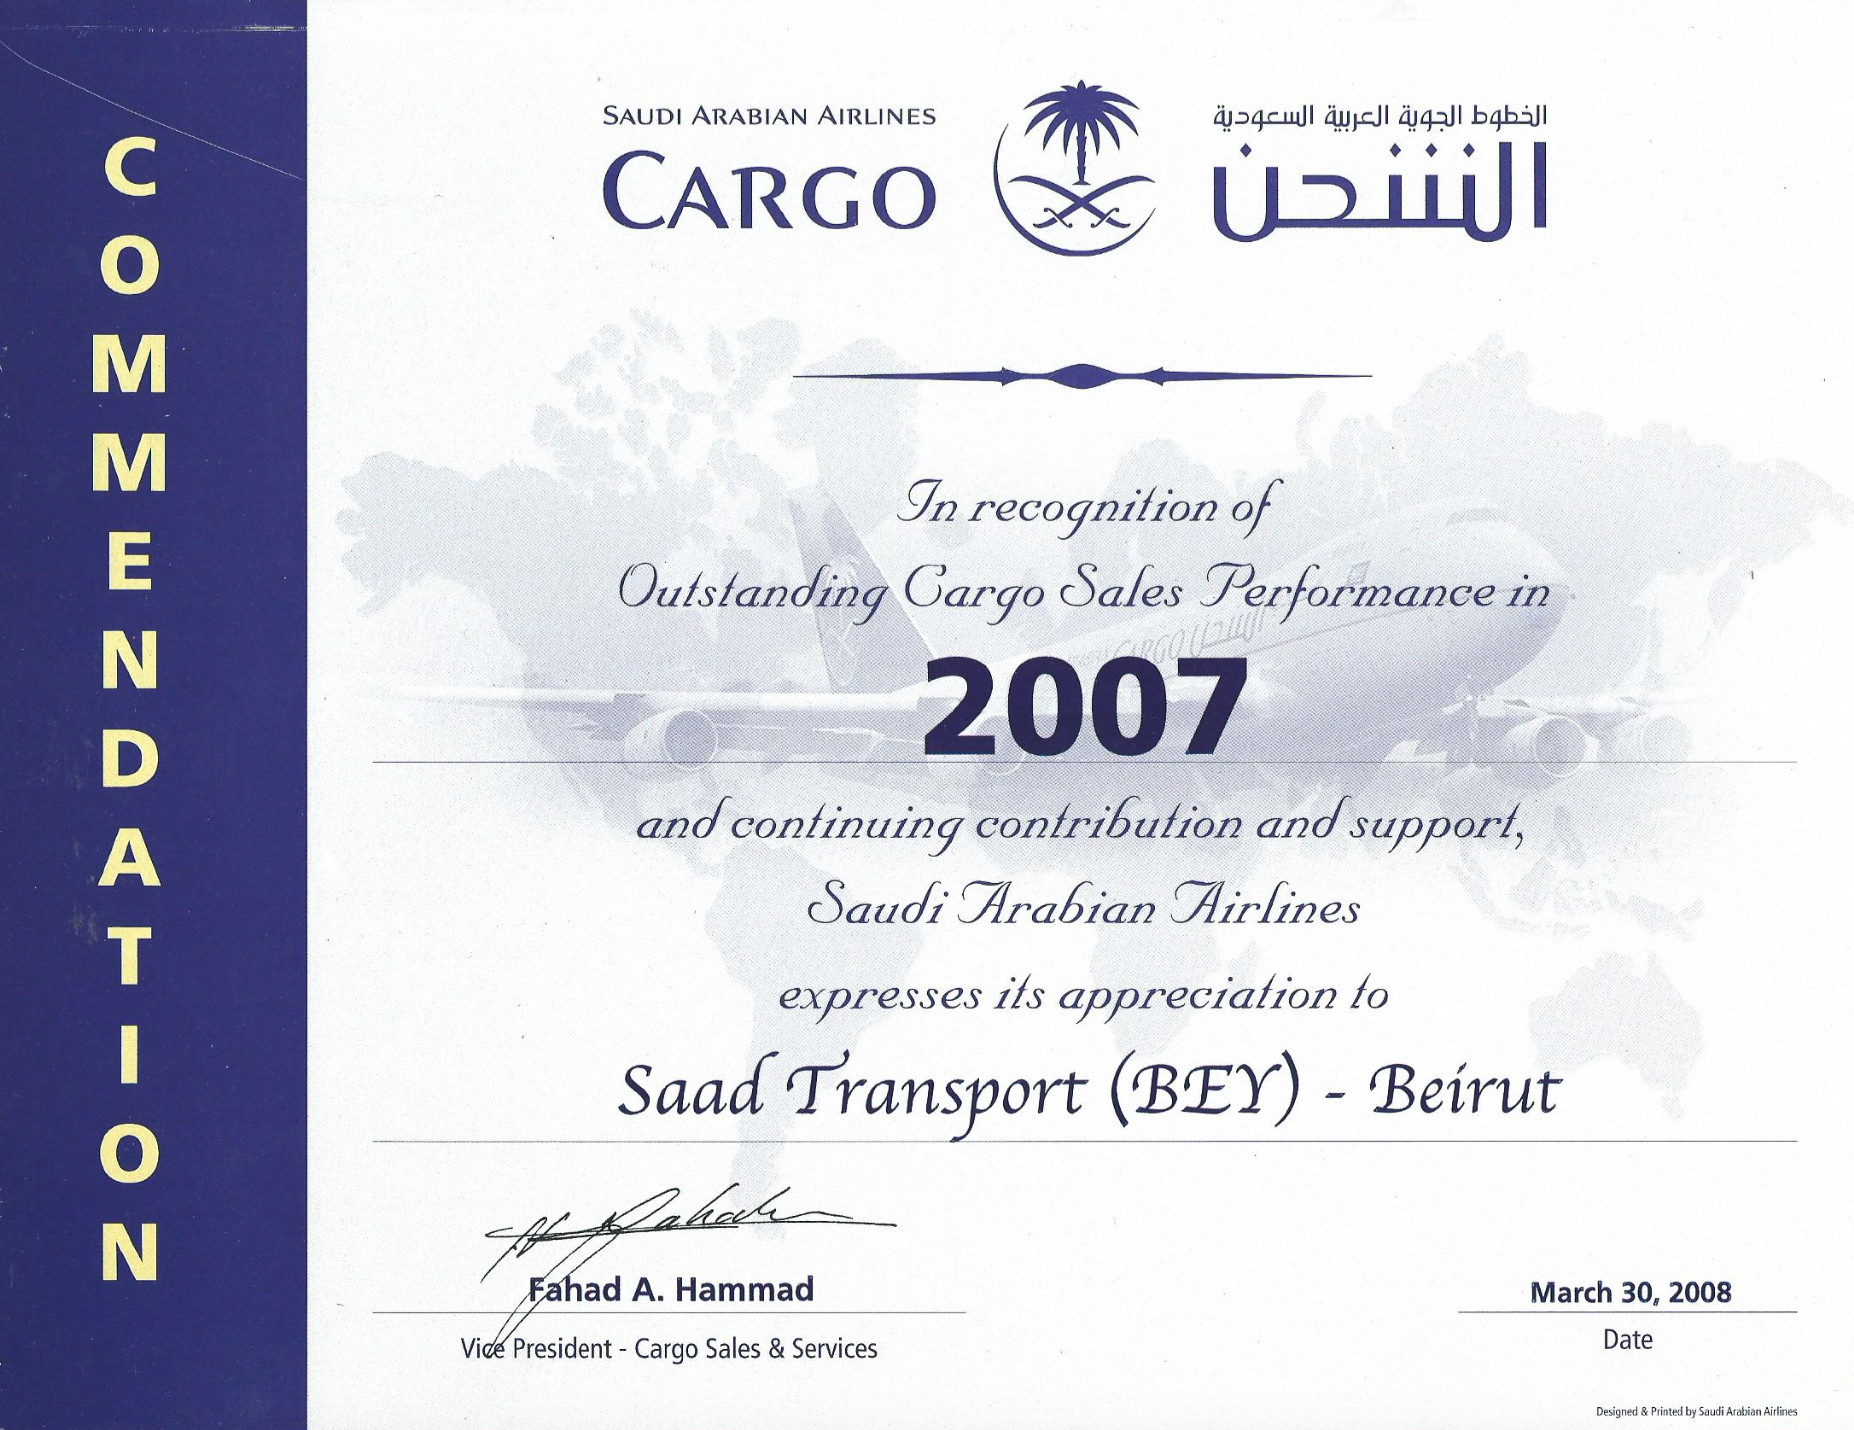 Outstanding Cargo Sales Performance 2007